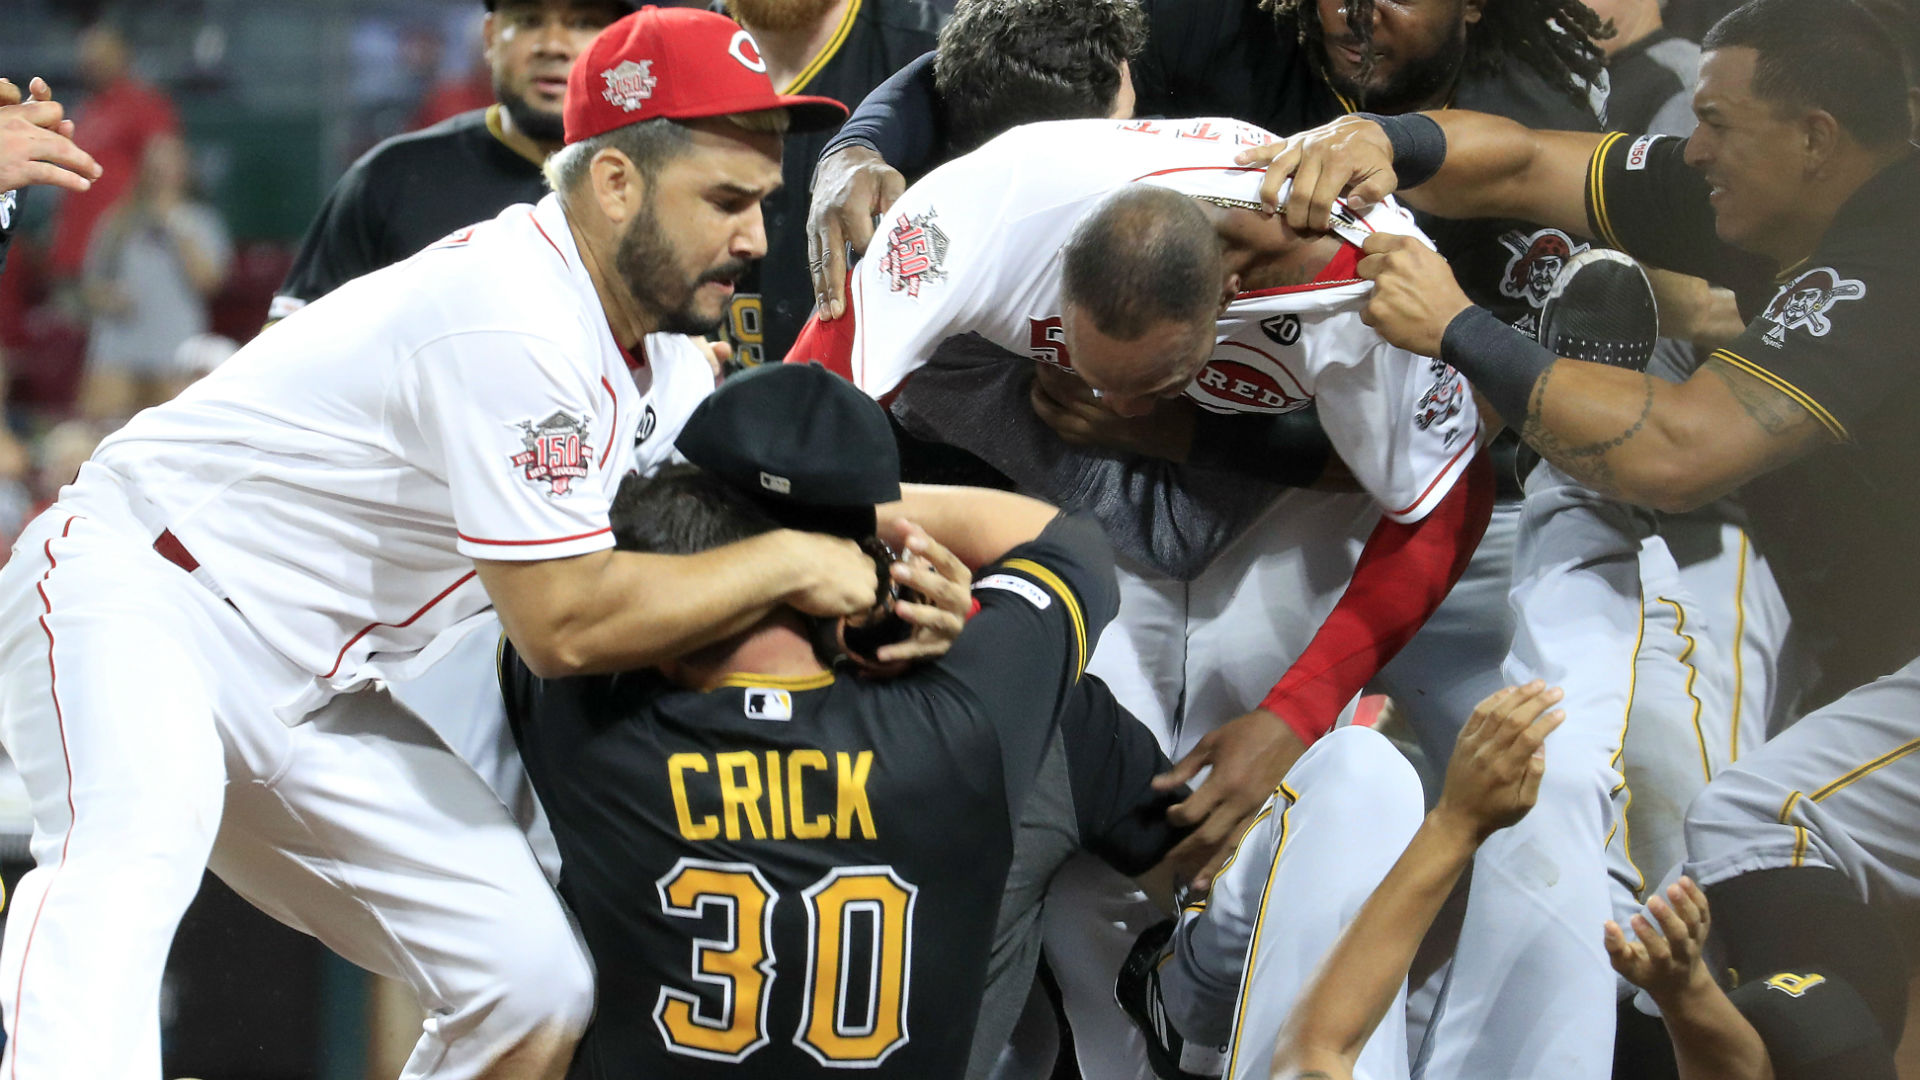 MLB: 'Umpires made aware' of beanball potential in Reds-Pirates series